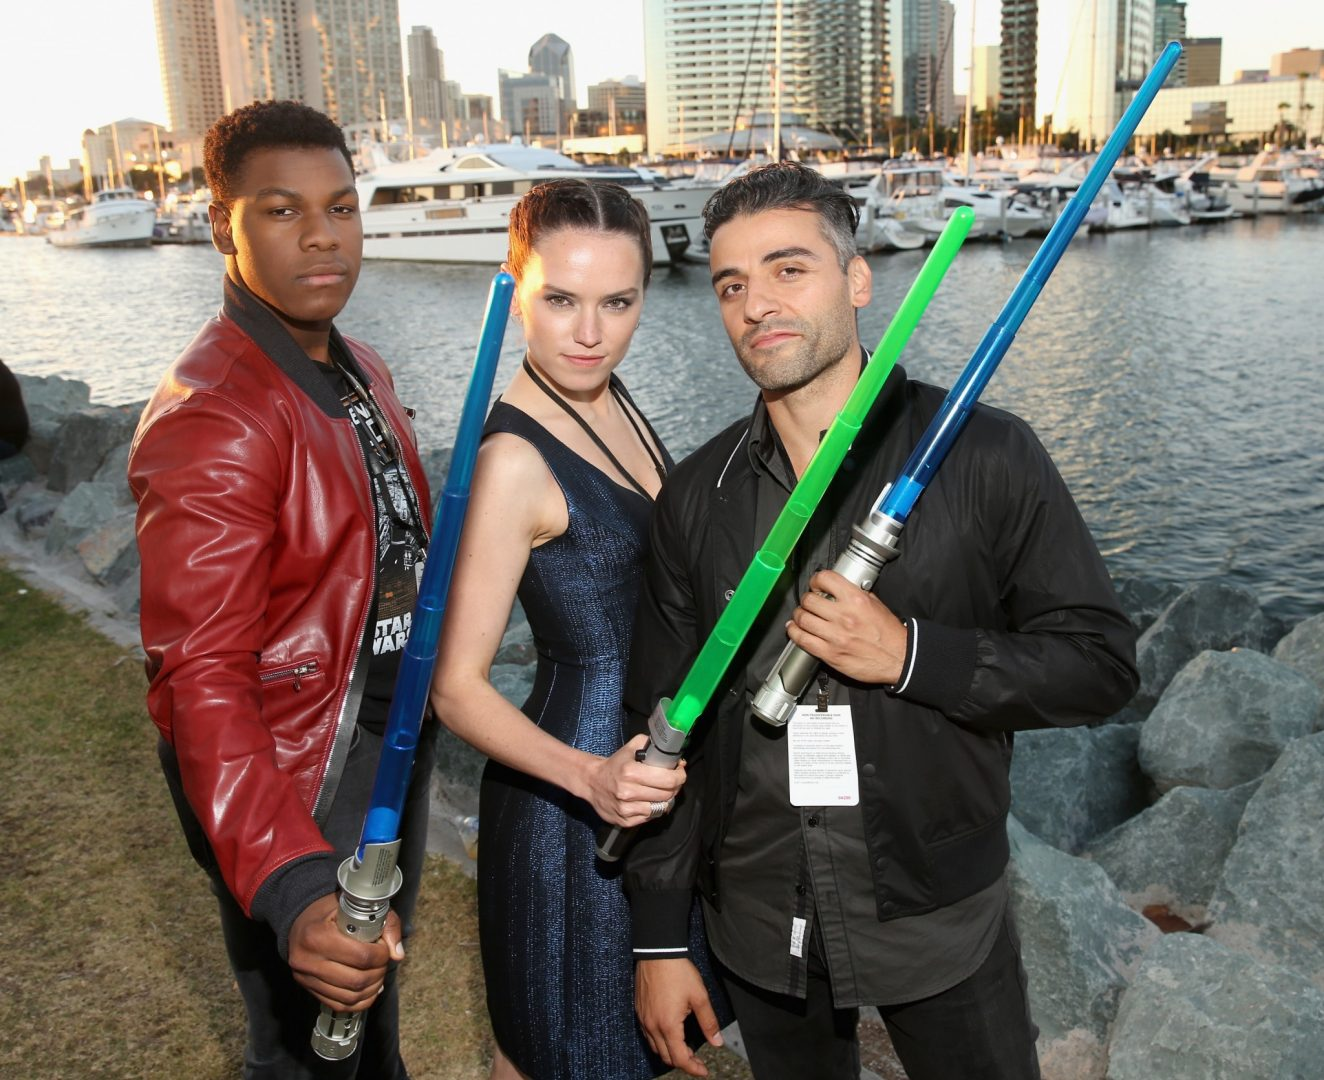 Daisy Ridley with John Boyega and Oscar Isaac